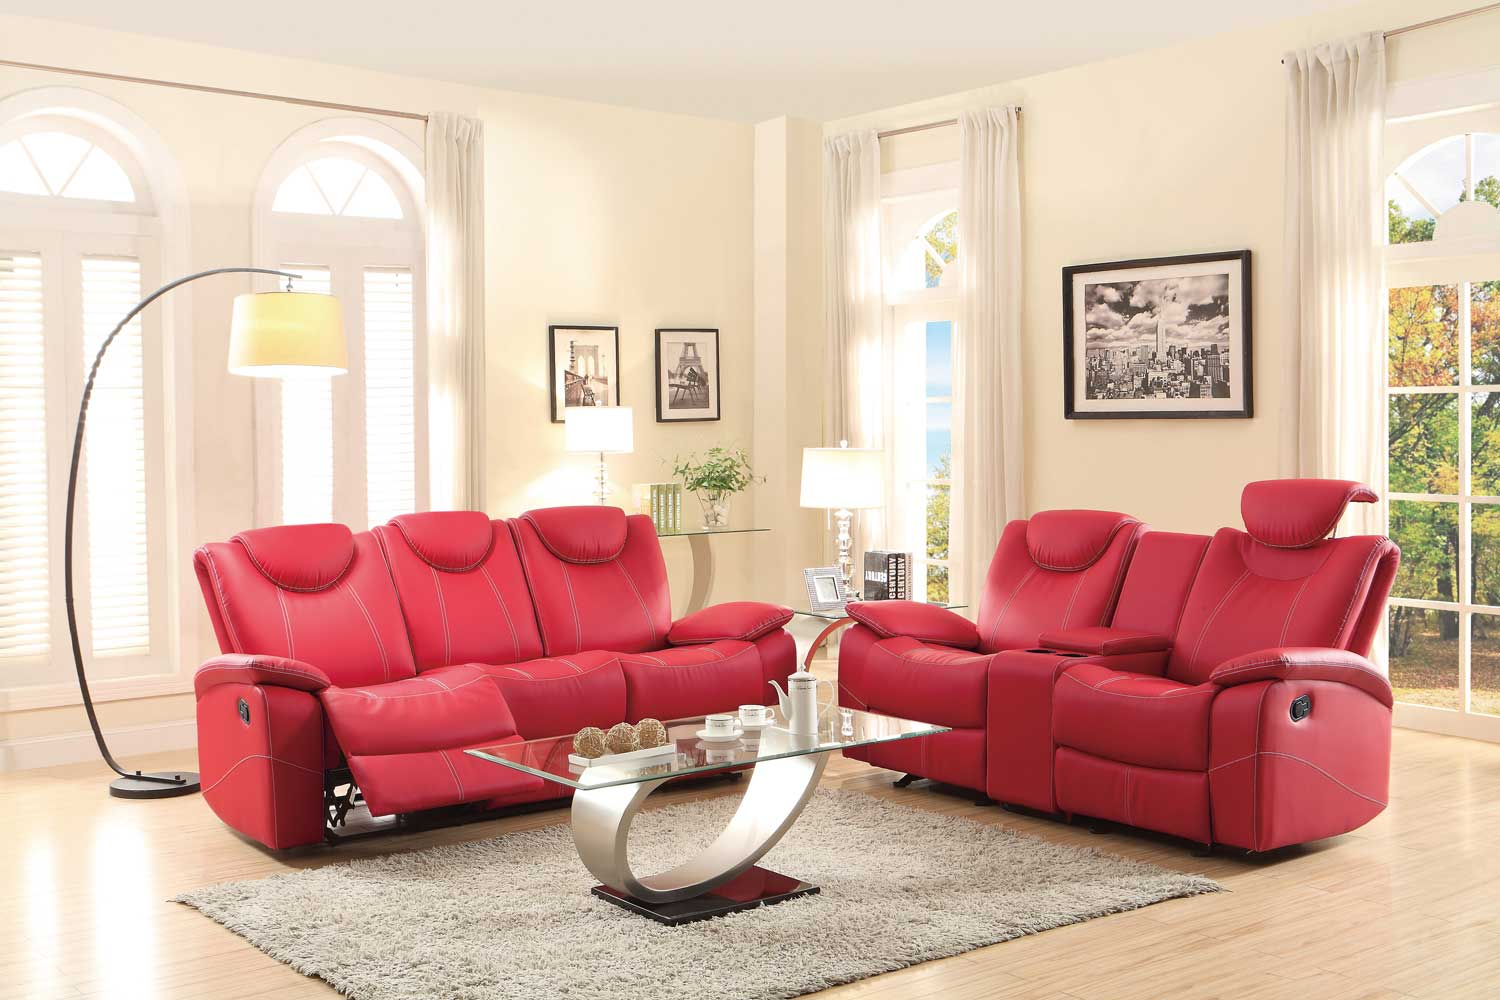 Homelegance Talbot Reclining Sofa Set - Red Bonded Leather